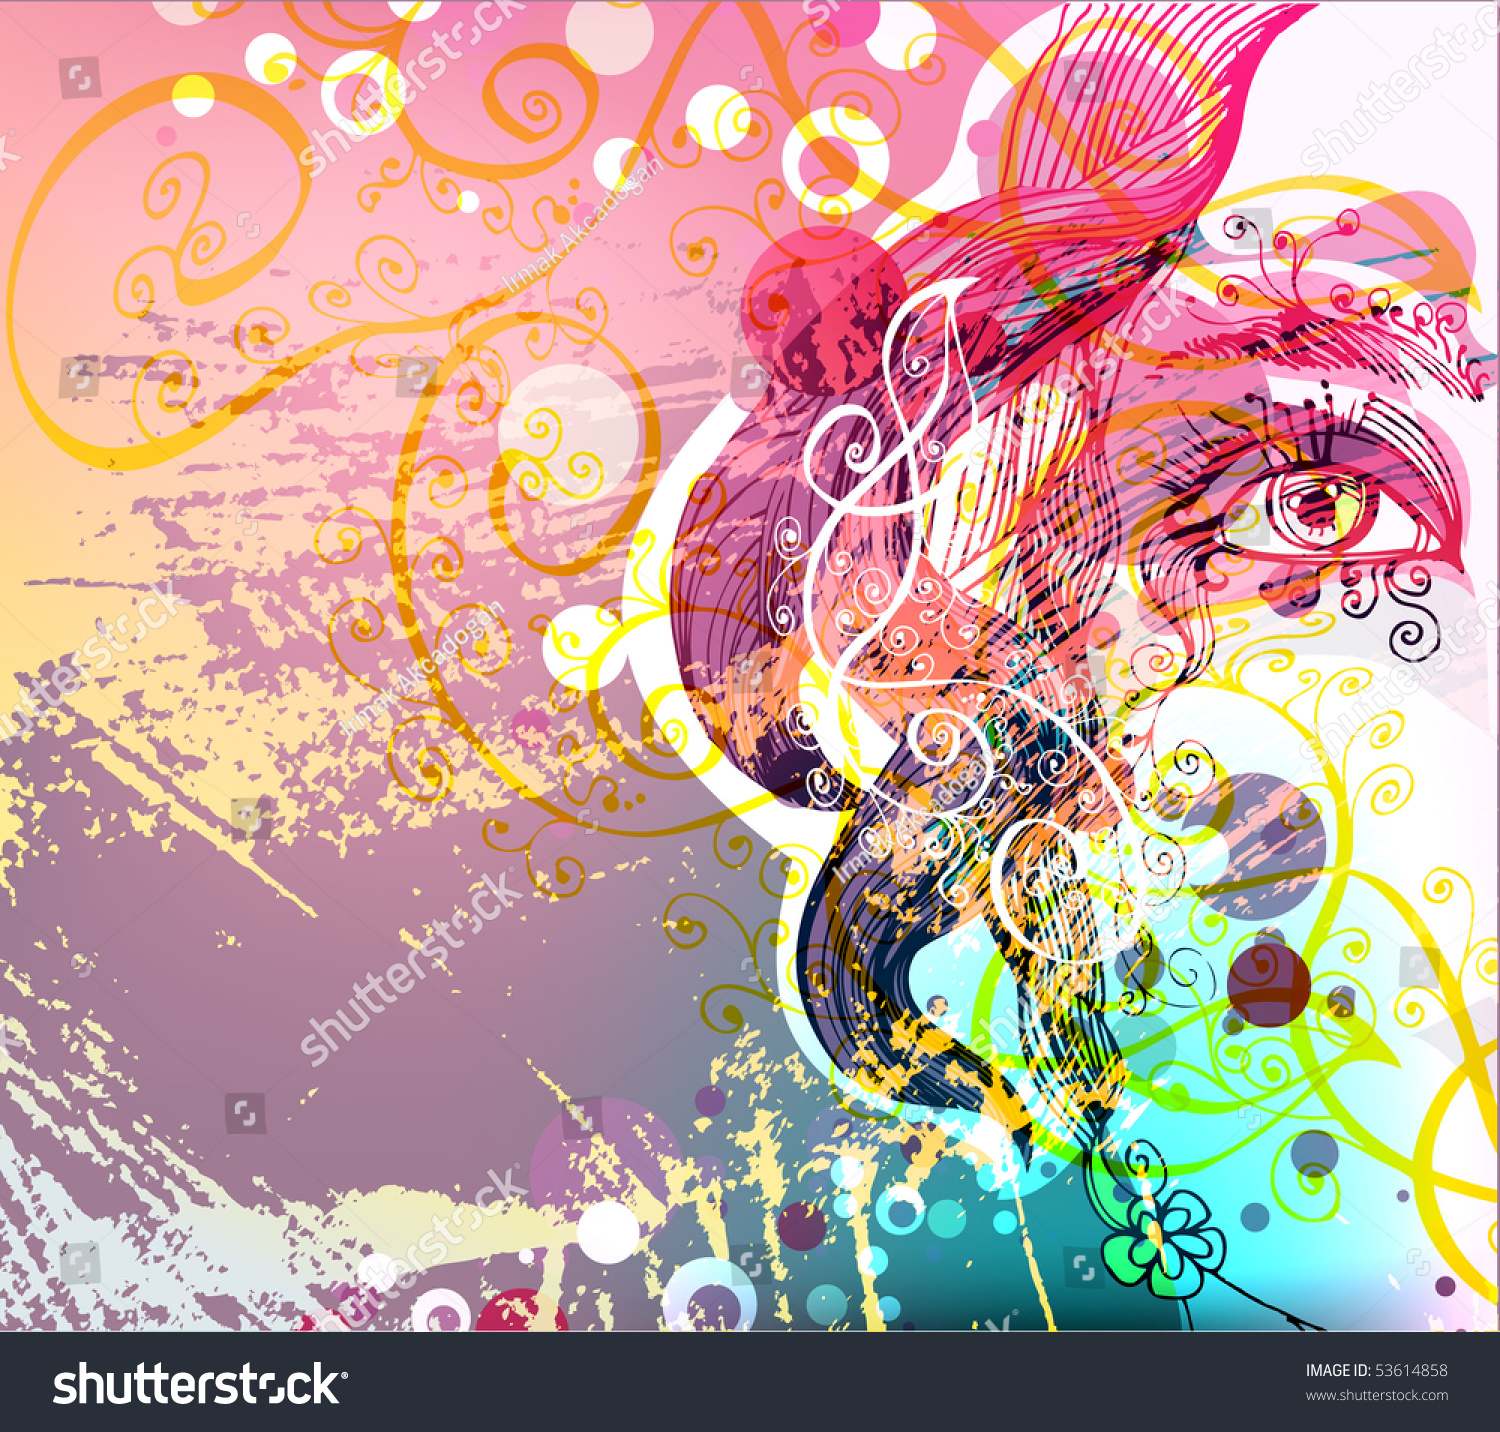 Uncategorized Girlspace abstract floral girl space text stock vector 53614858 shutterstock for text